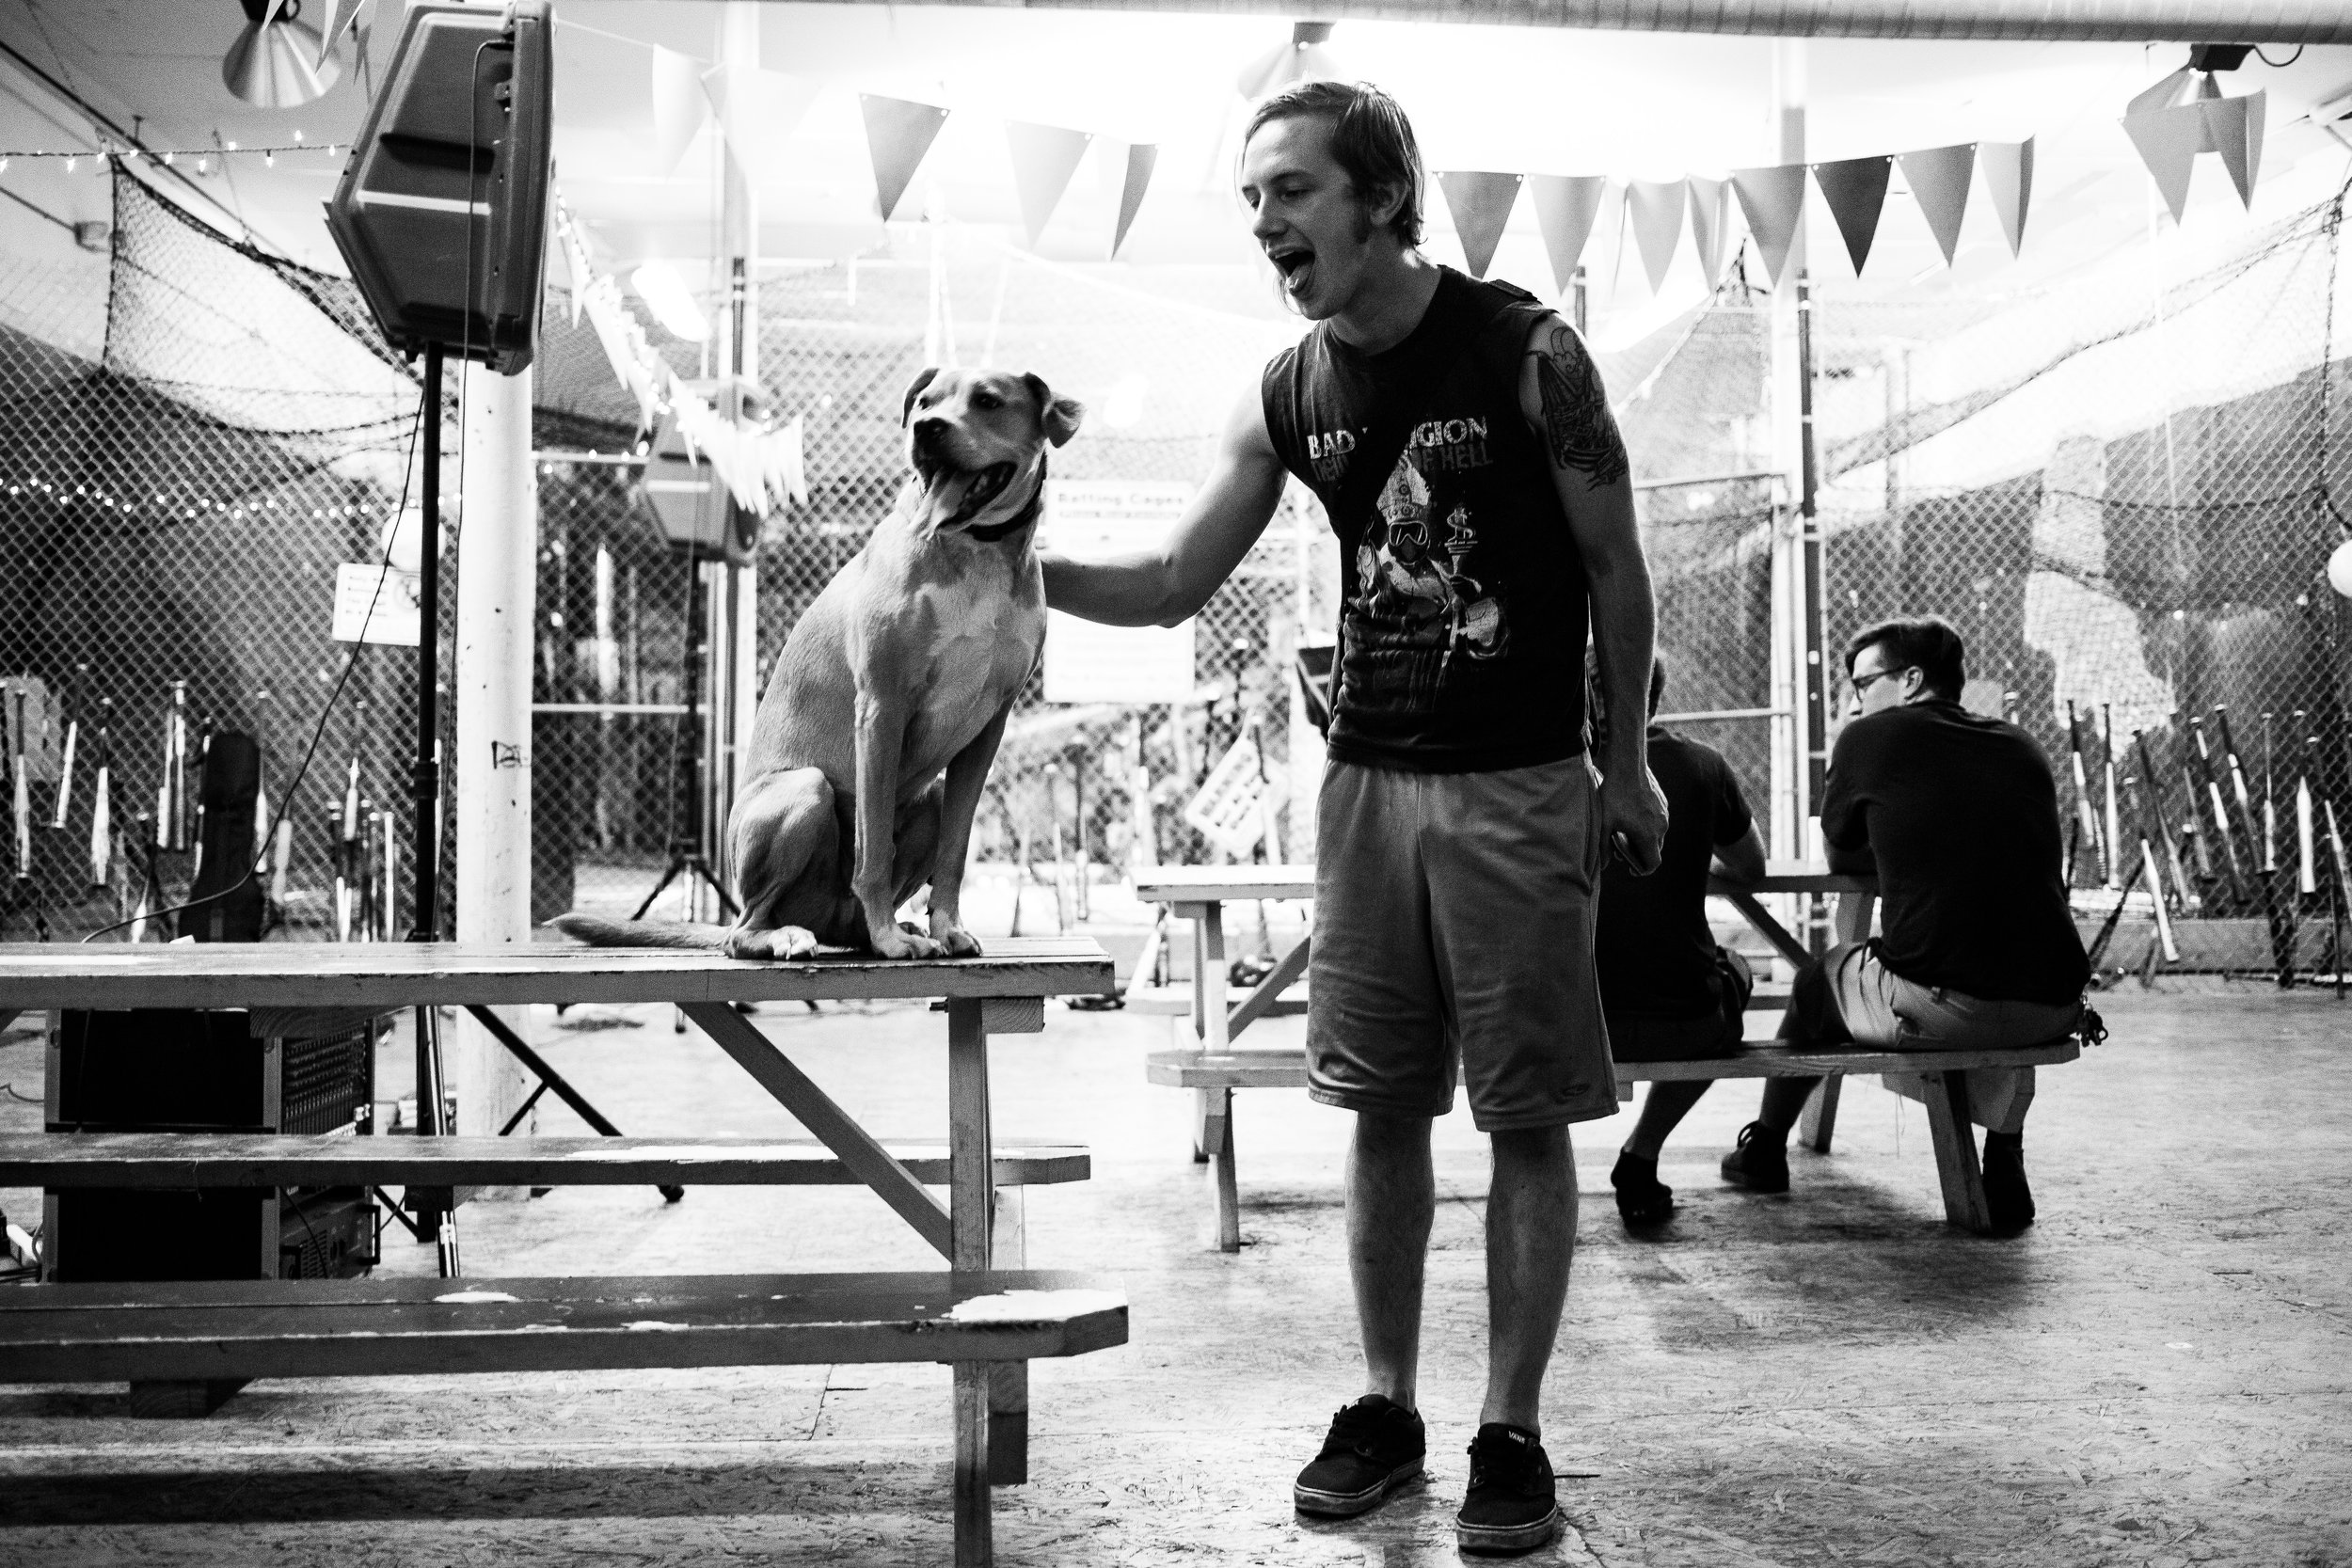 Josh stands with a dog in the venue.